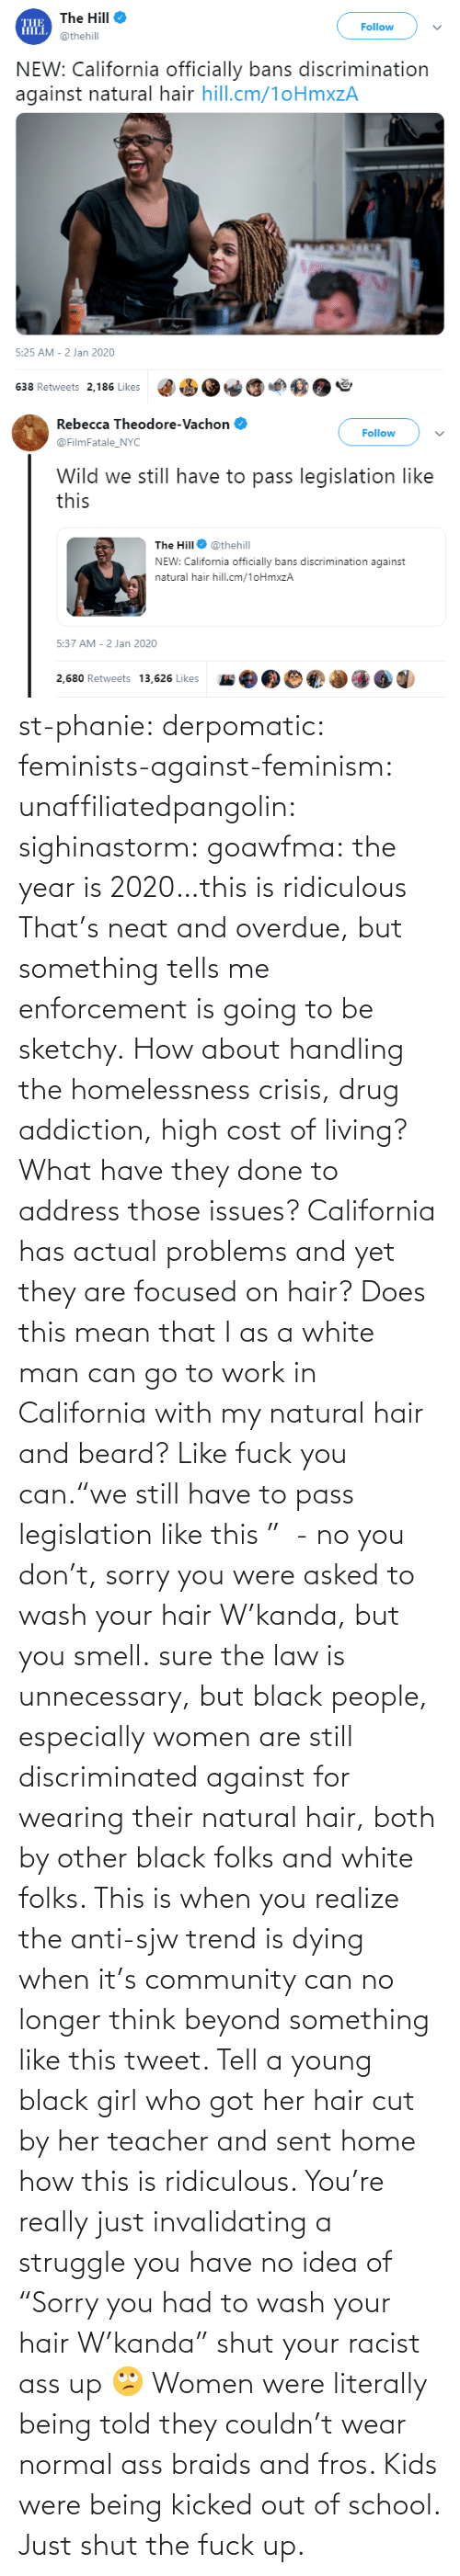 "Girl: st-phanie:  derpomatic:  feminists-against-feminism:  unaffiliatedpangolin:  sighinastorm:   goawfma: the year is 2020…this is ridiculous That's neat and overdue, but something tells me enforcement is going to be sketchy.    How about handling the homelessness crisis, drug addiction, high cost of living? What have they done to address those issues? California has actual problems and yet they are focused on hair?  Does this mean that I as a white man can go to work in California with my natural hair and beard?  Like fuck you can.""we still have to pass legislation like this ""  - no you don't, sorry you were asked to wash your hair W'kanda, but you smell.    sure the law is unnecessary, but black people, especially women are still discriminated against for wearing their natural hair, both by other black folks and white folks. This is when you realize the anti-sjw trend is dying when it's community can no longer think beyond something like this tweet. Tell a young black girl who got her hair cut by her teacher and sent home how this is ridiculous. You're really just invalidating a struggle you have no idea of   ""Sorry you had to wash your hair W'kanda"" shut your racist ass up 🙄 Women were literally being told they couldn't wear normal ass braids and fros. Kids were being kicked out of school. Just shut the fuck up."